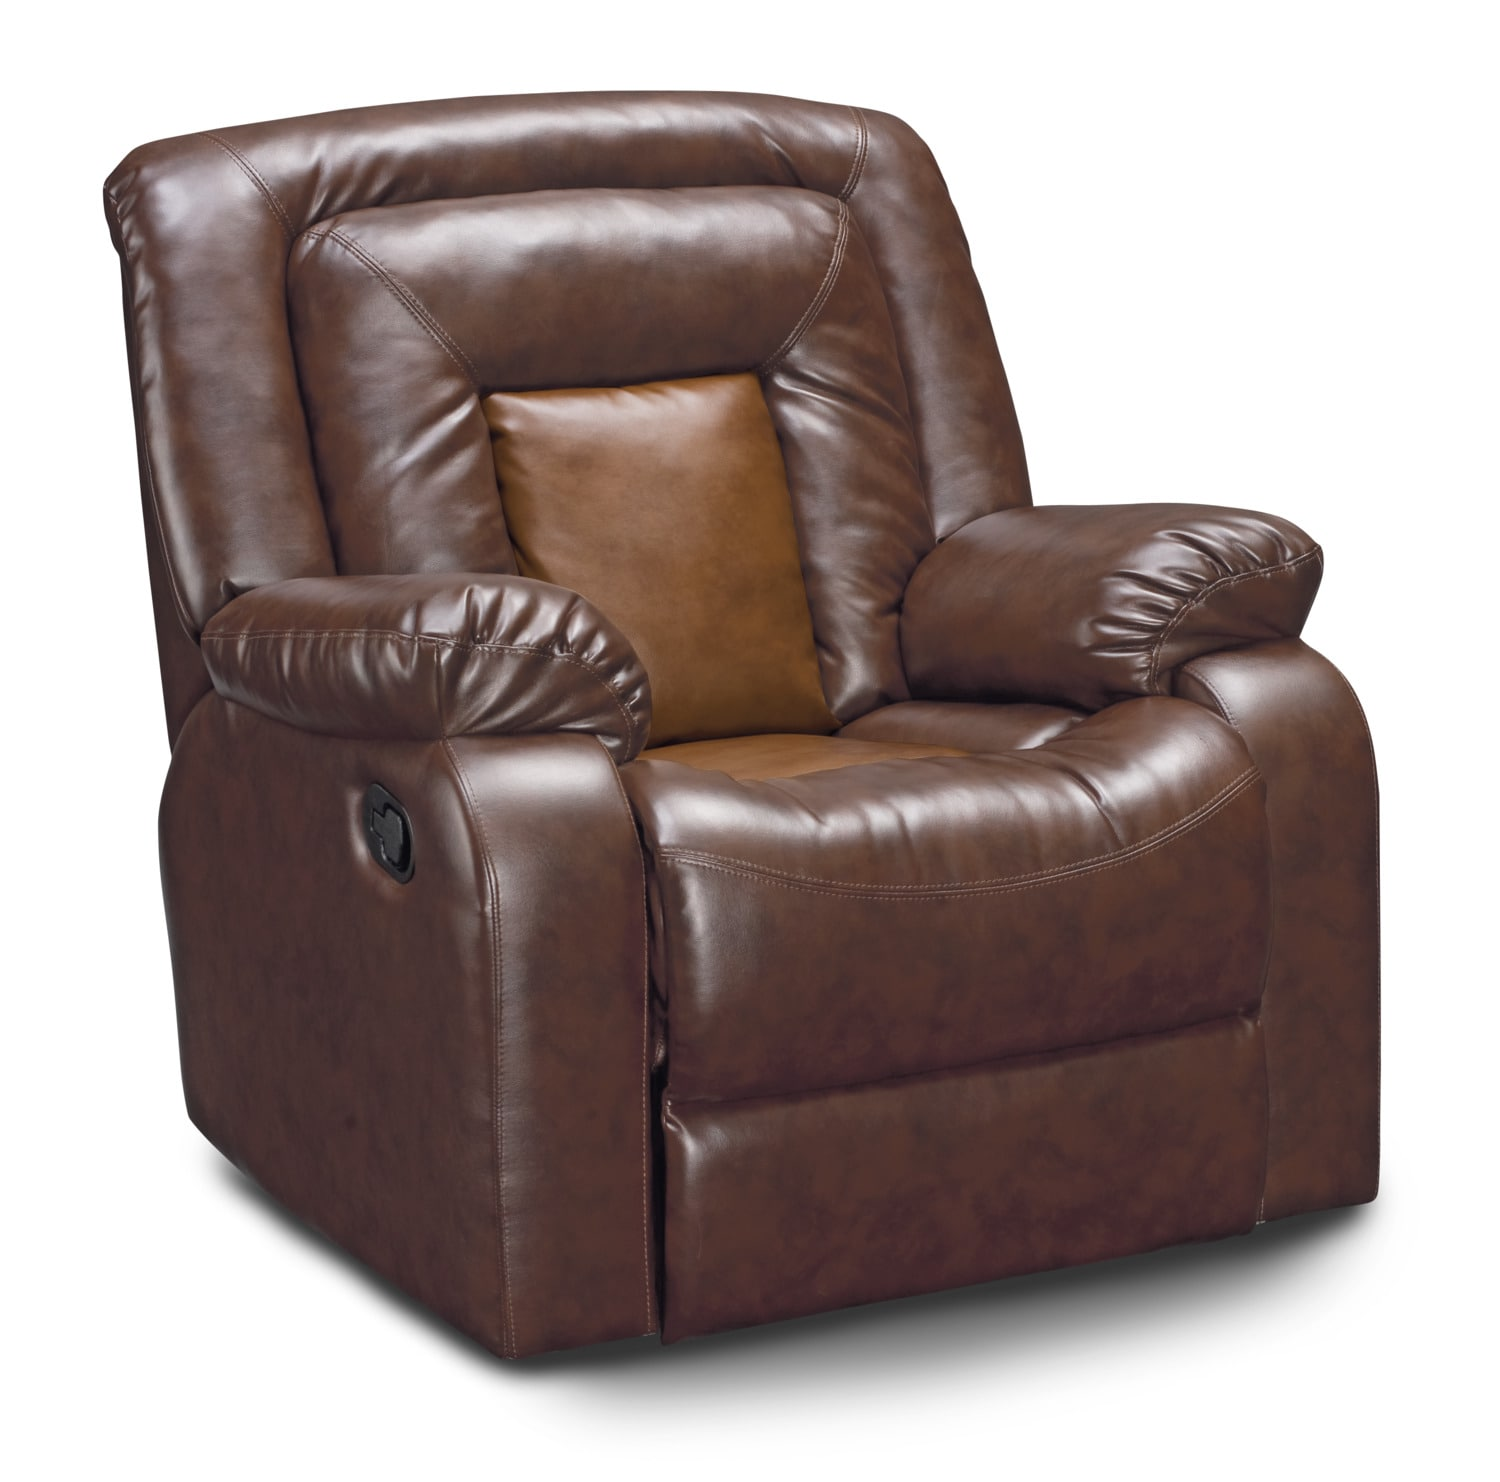 Mustang Dual Reclining Sofa Dual Reclining Loveseat And Recliner Set Brown American